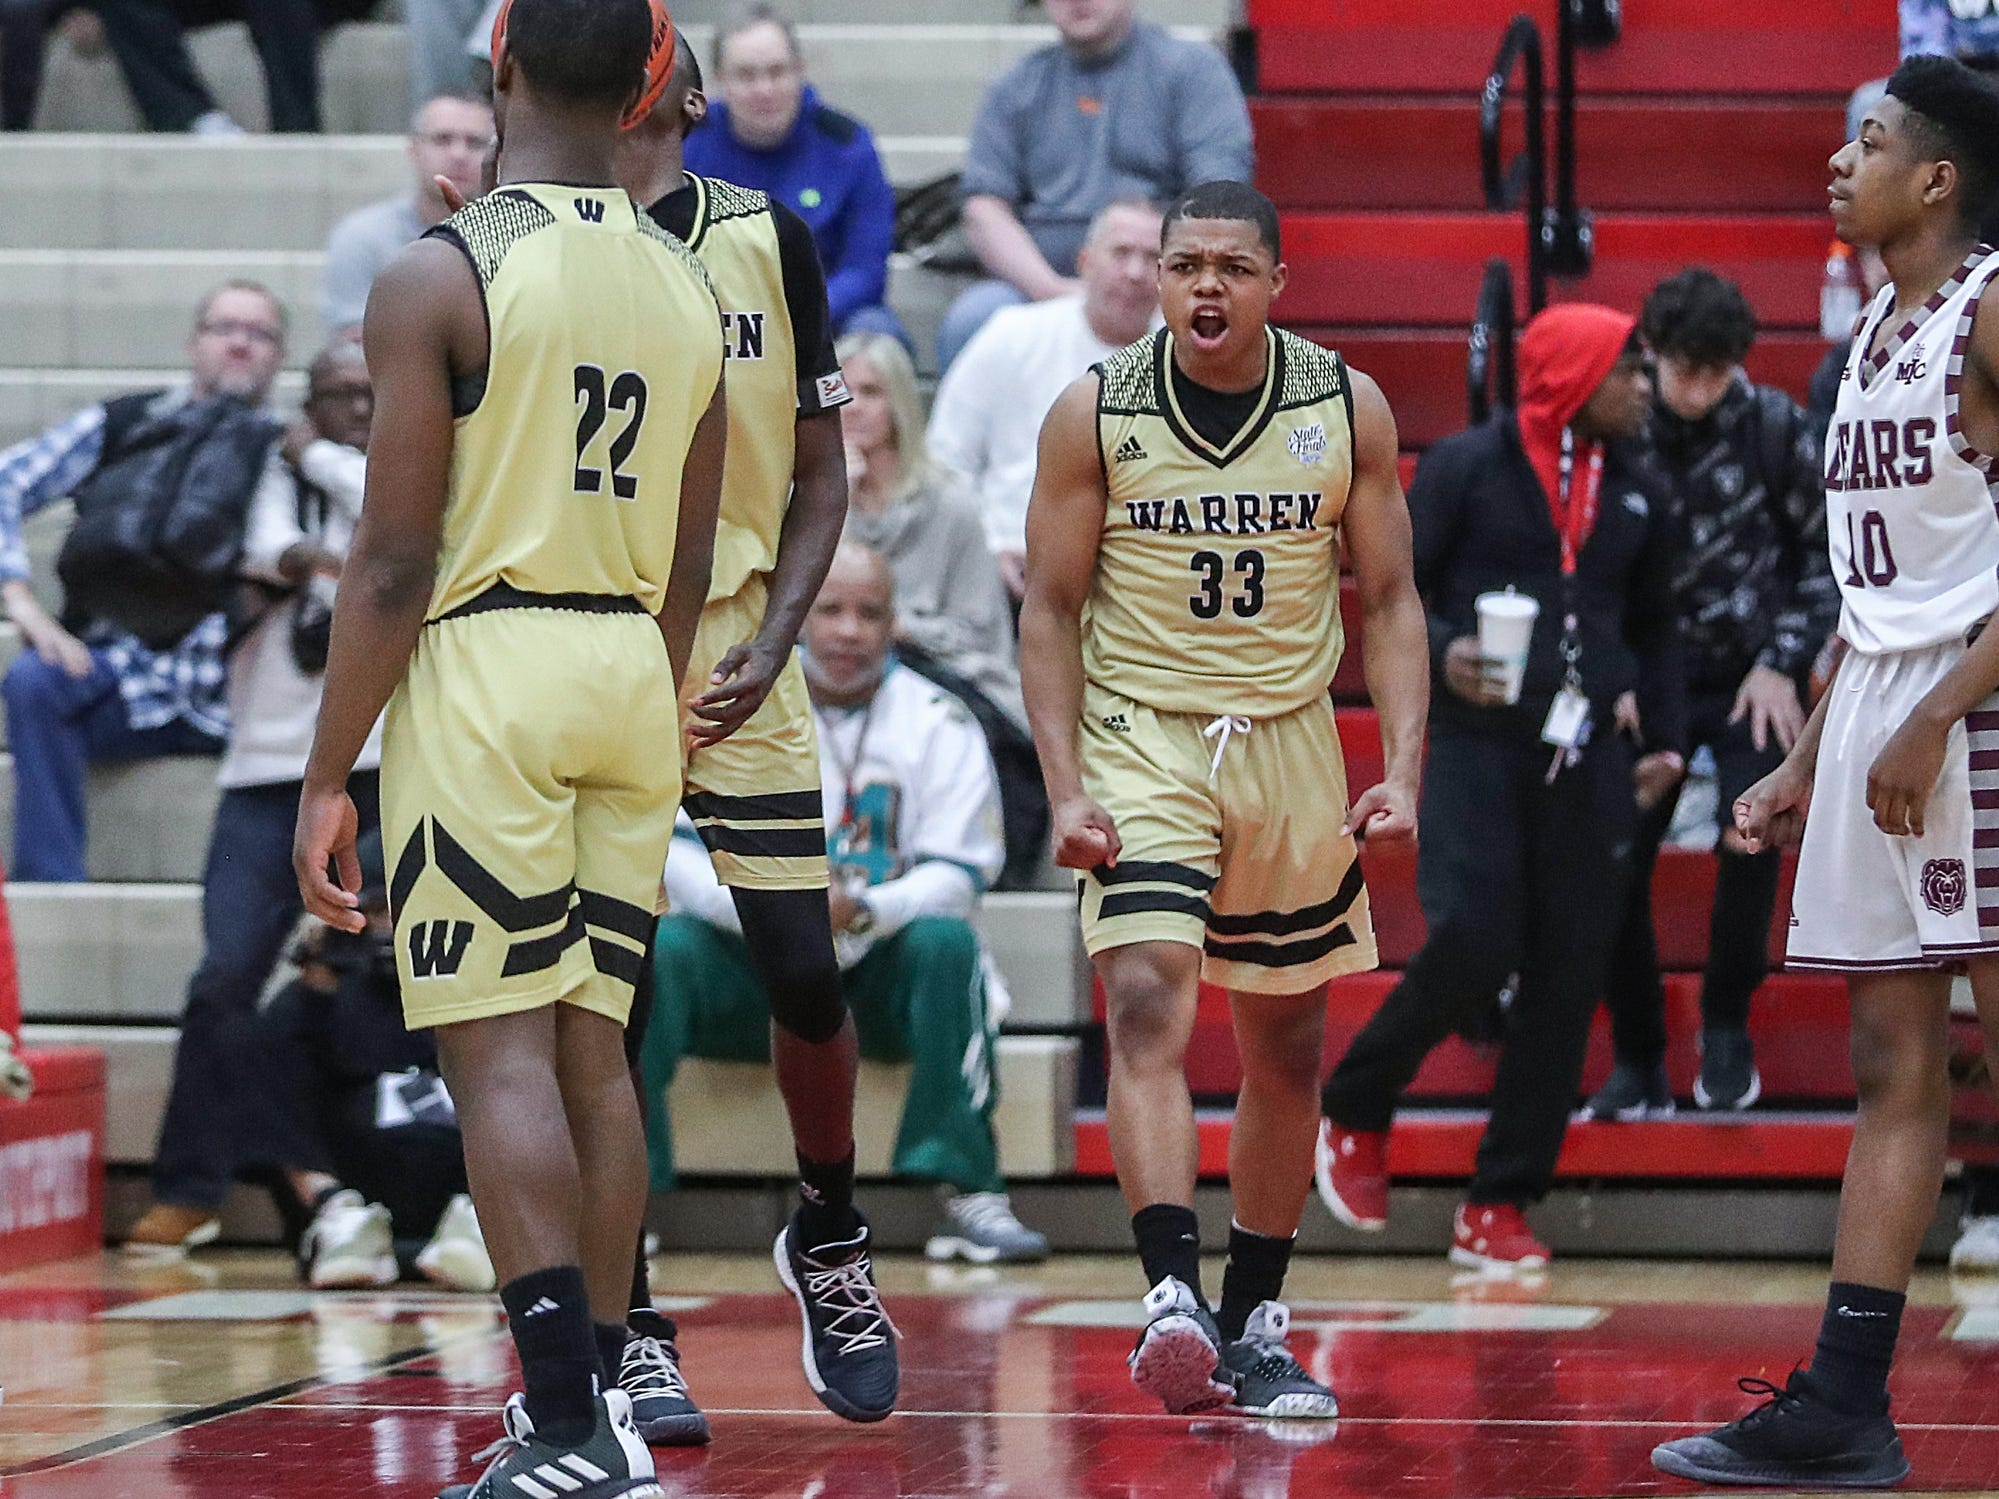 Warren Central Warriors Manuel Brown (33) celebrates as the Warriors clinch the Marion County tournament title over Lawrence Central, 60-56, at Southport High School in Indianapolis, Monday, Jan. 14, 2019. The victory marks a 46-game winning streak for the Warriors, the third-longest in state history.